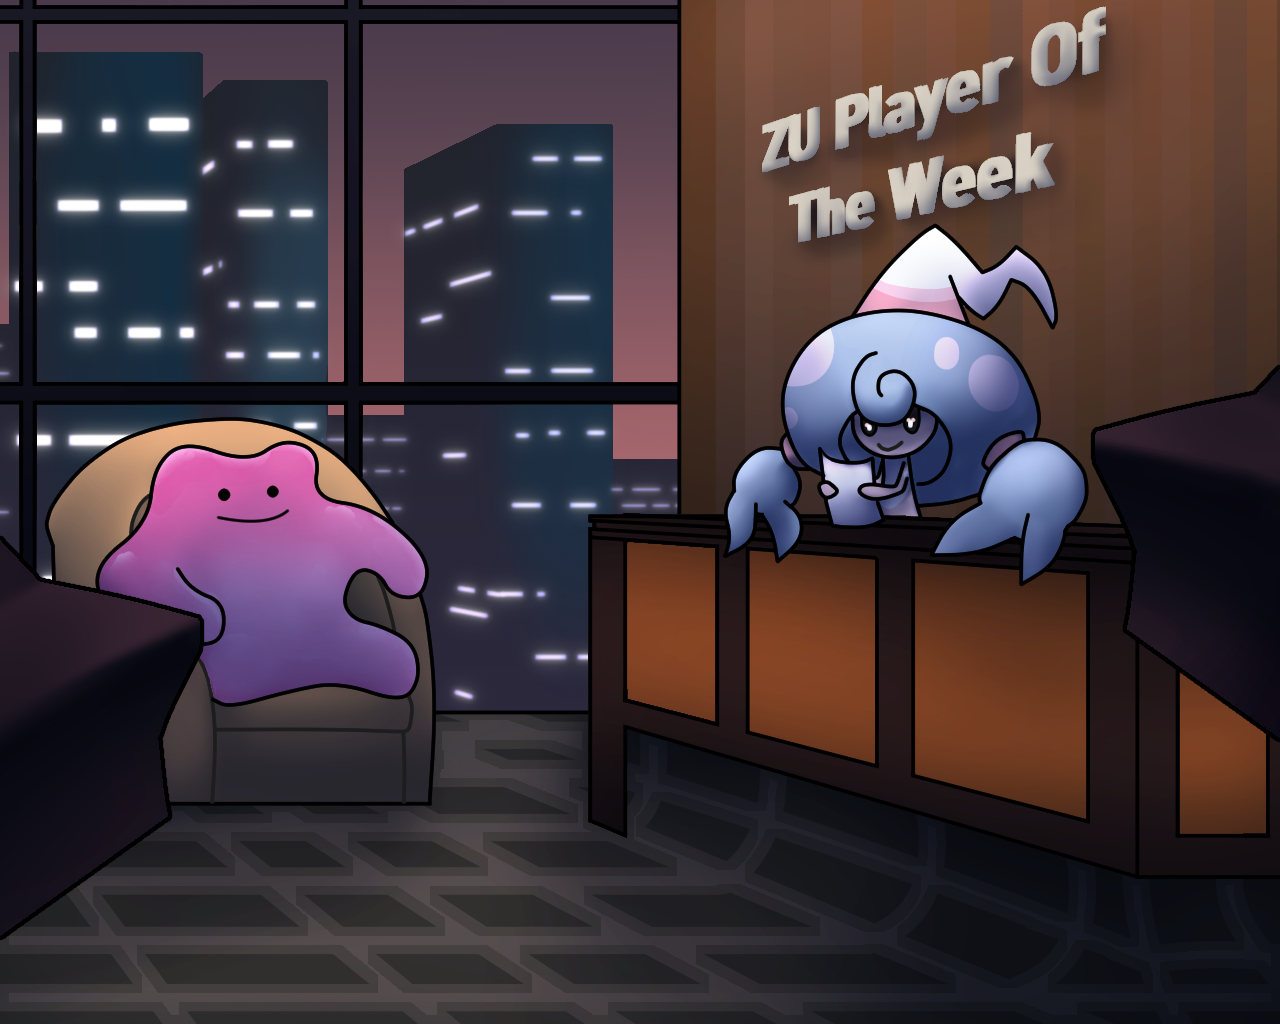 ZU_Player_Of_The_Week.png